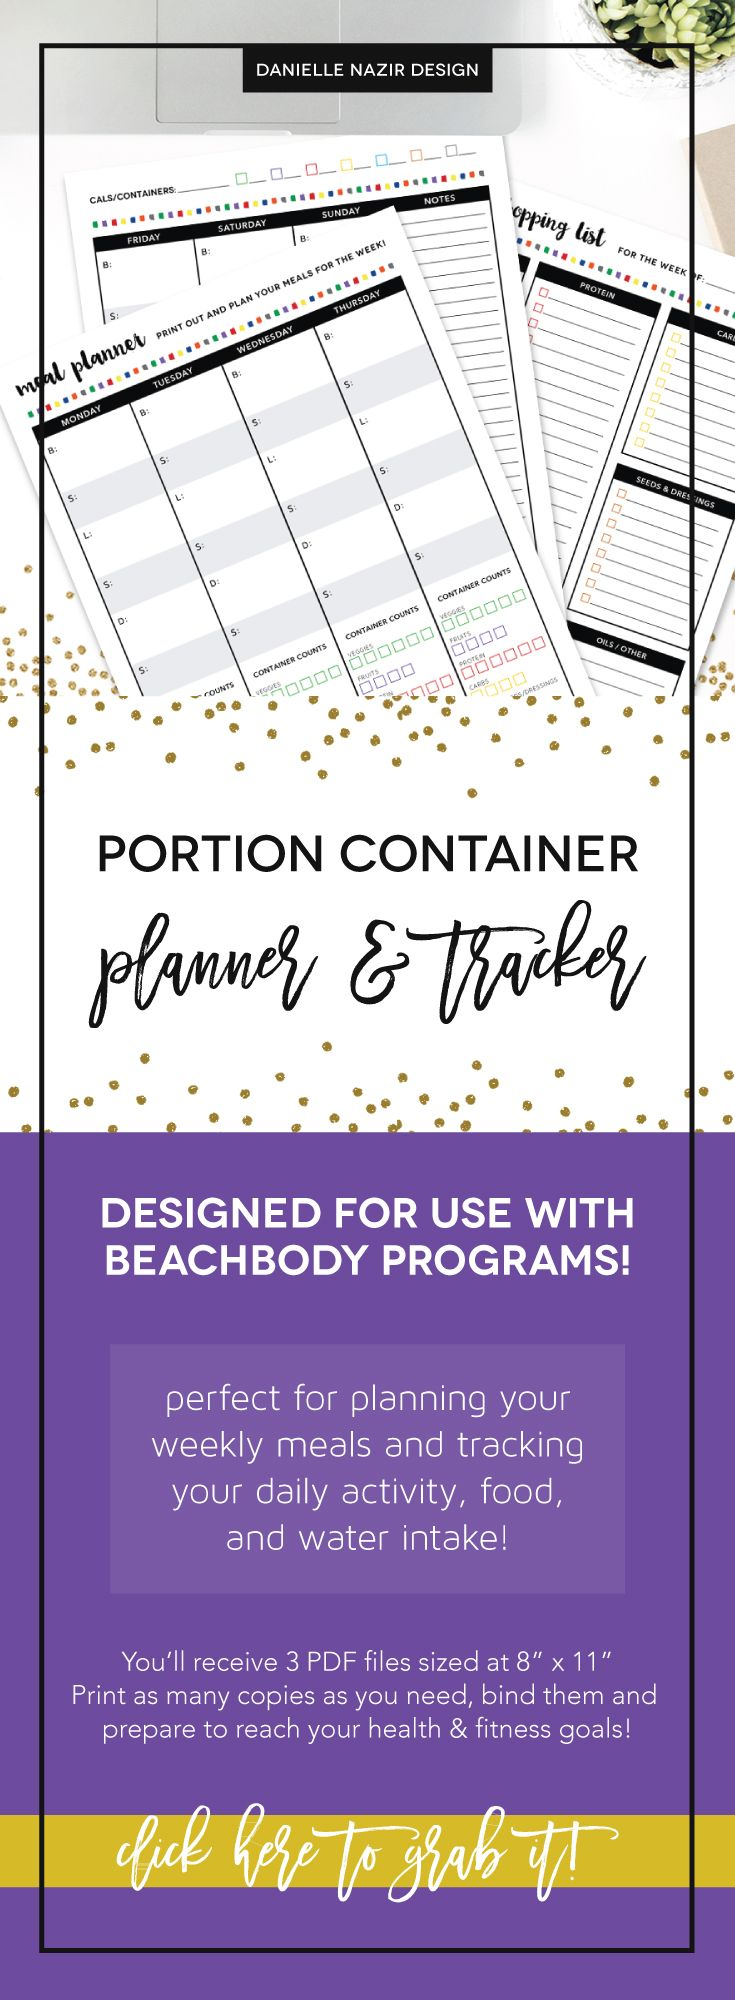 get fit perfect portions meal plan & recipe guide